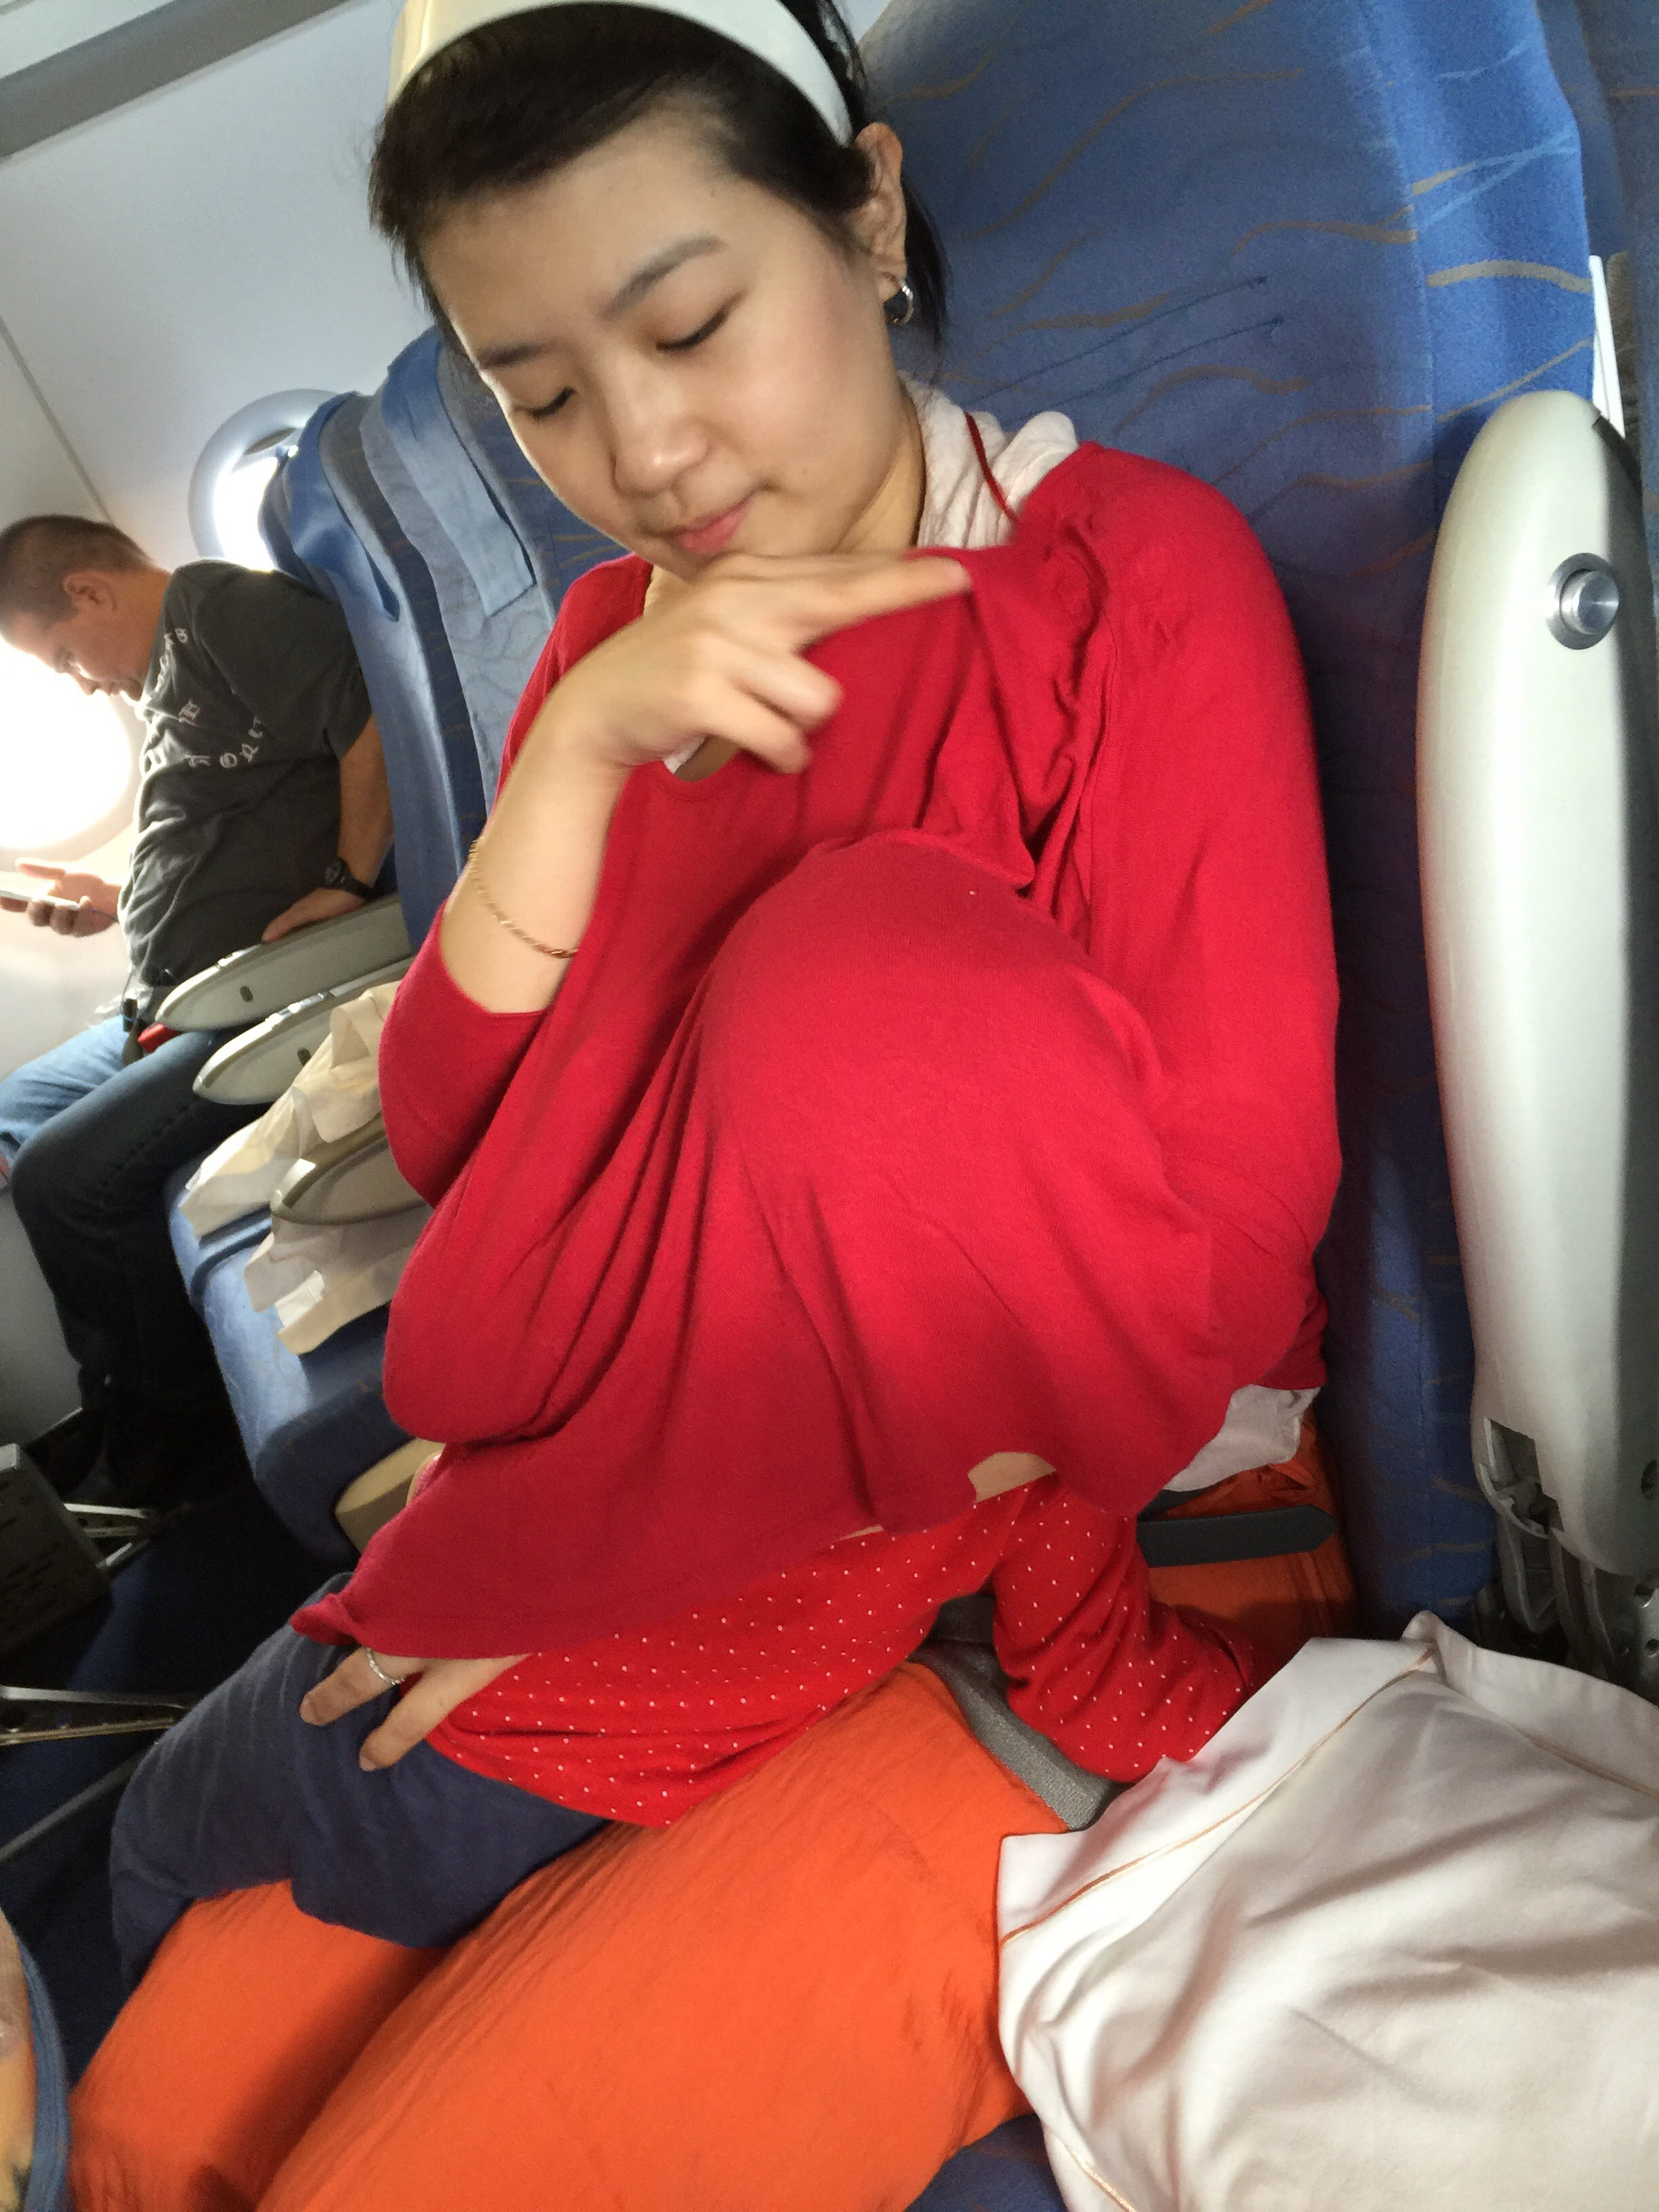 Breastfeeding in the airplane